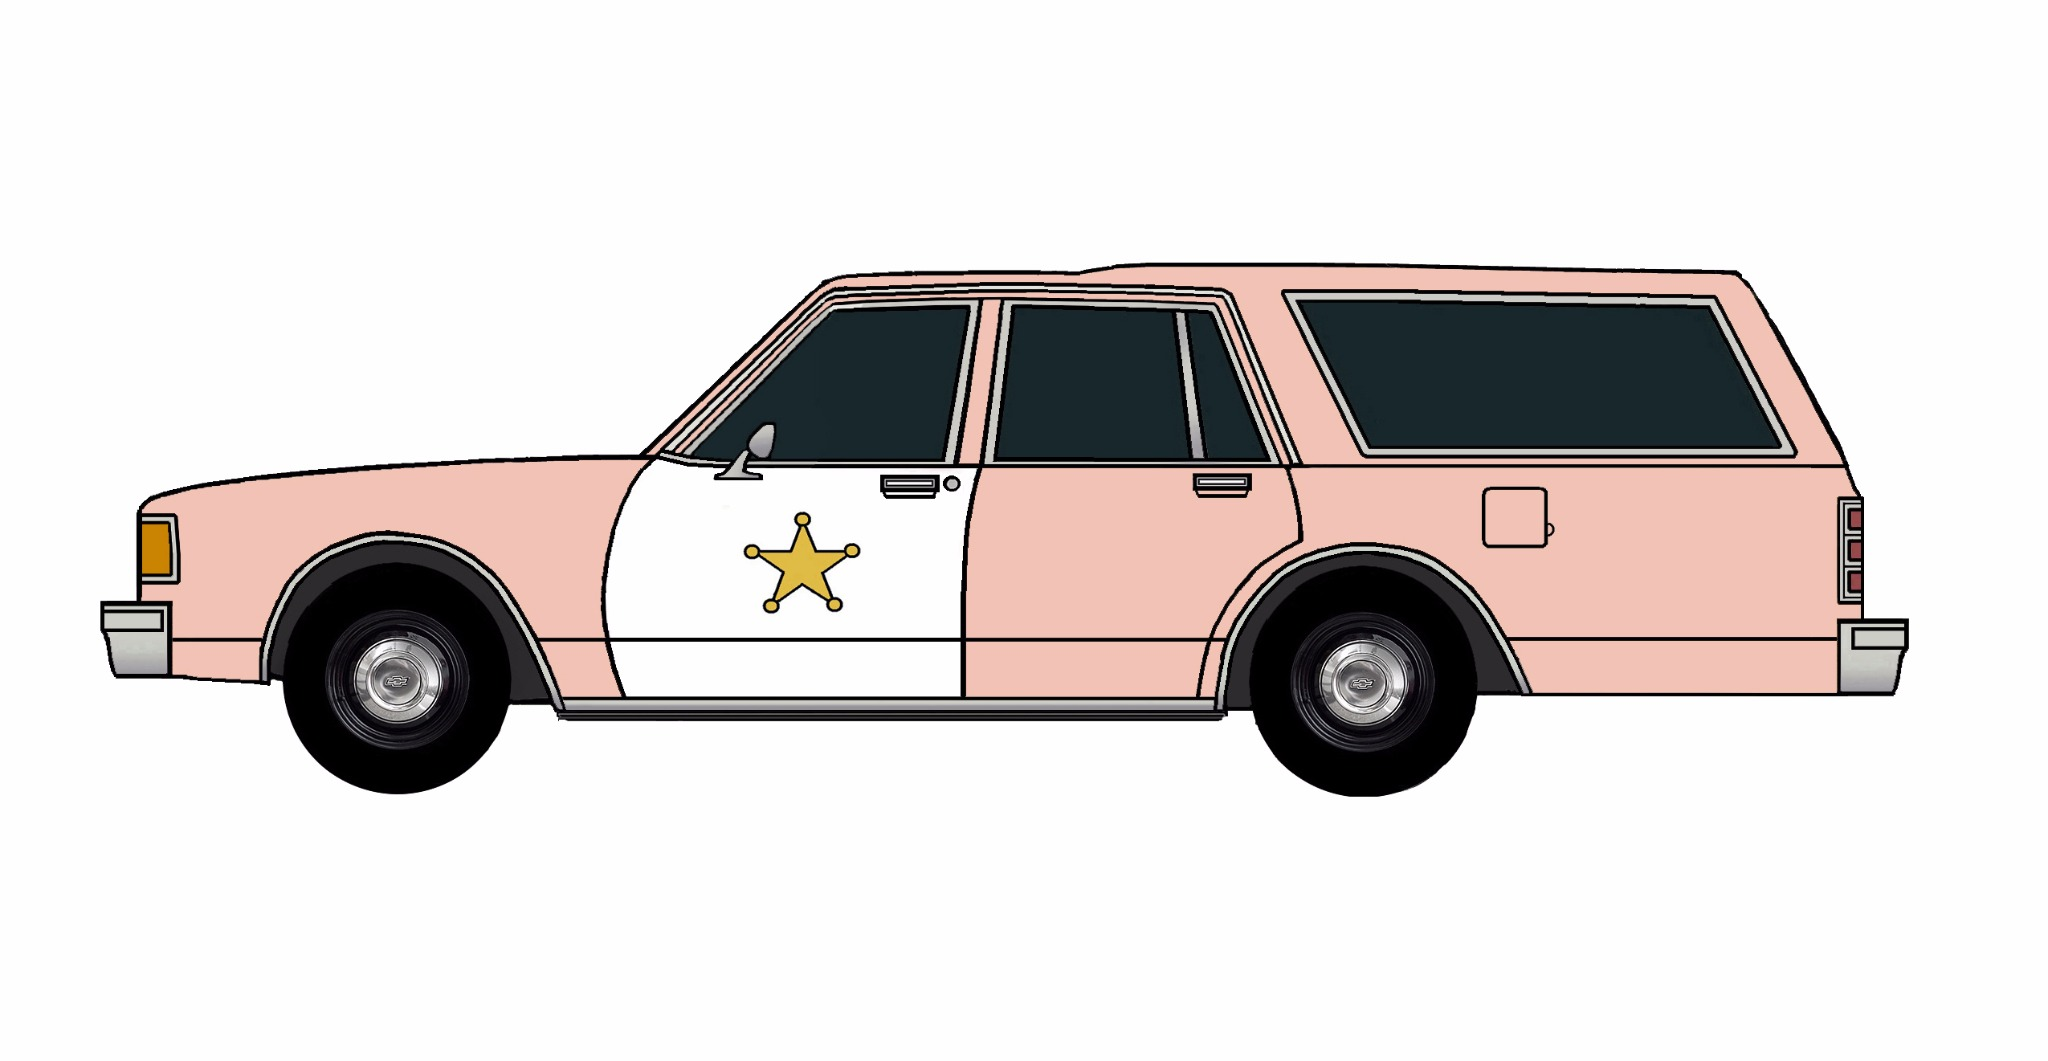 1986 Chevy Caprice 9C1 Wagon ROSE PINK